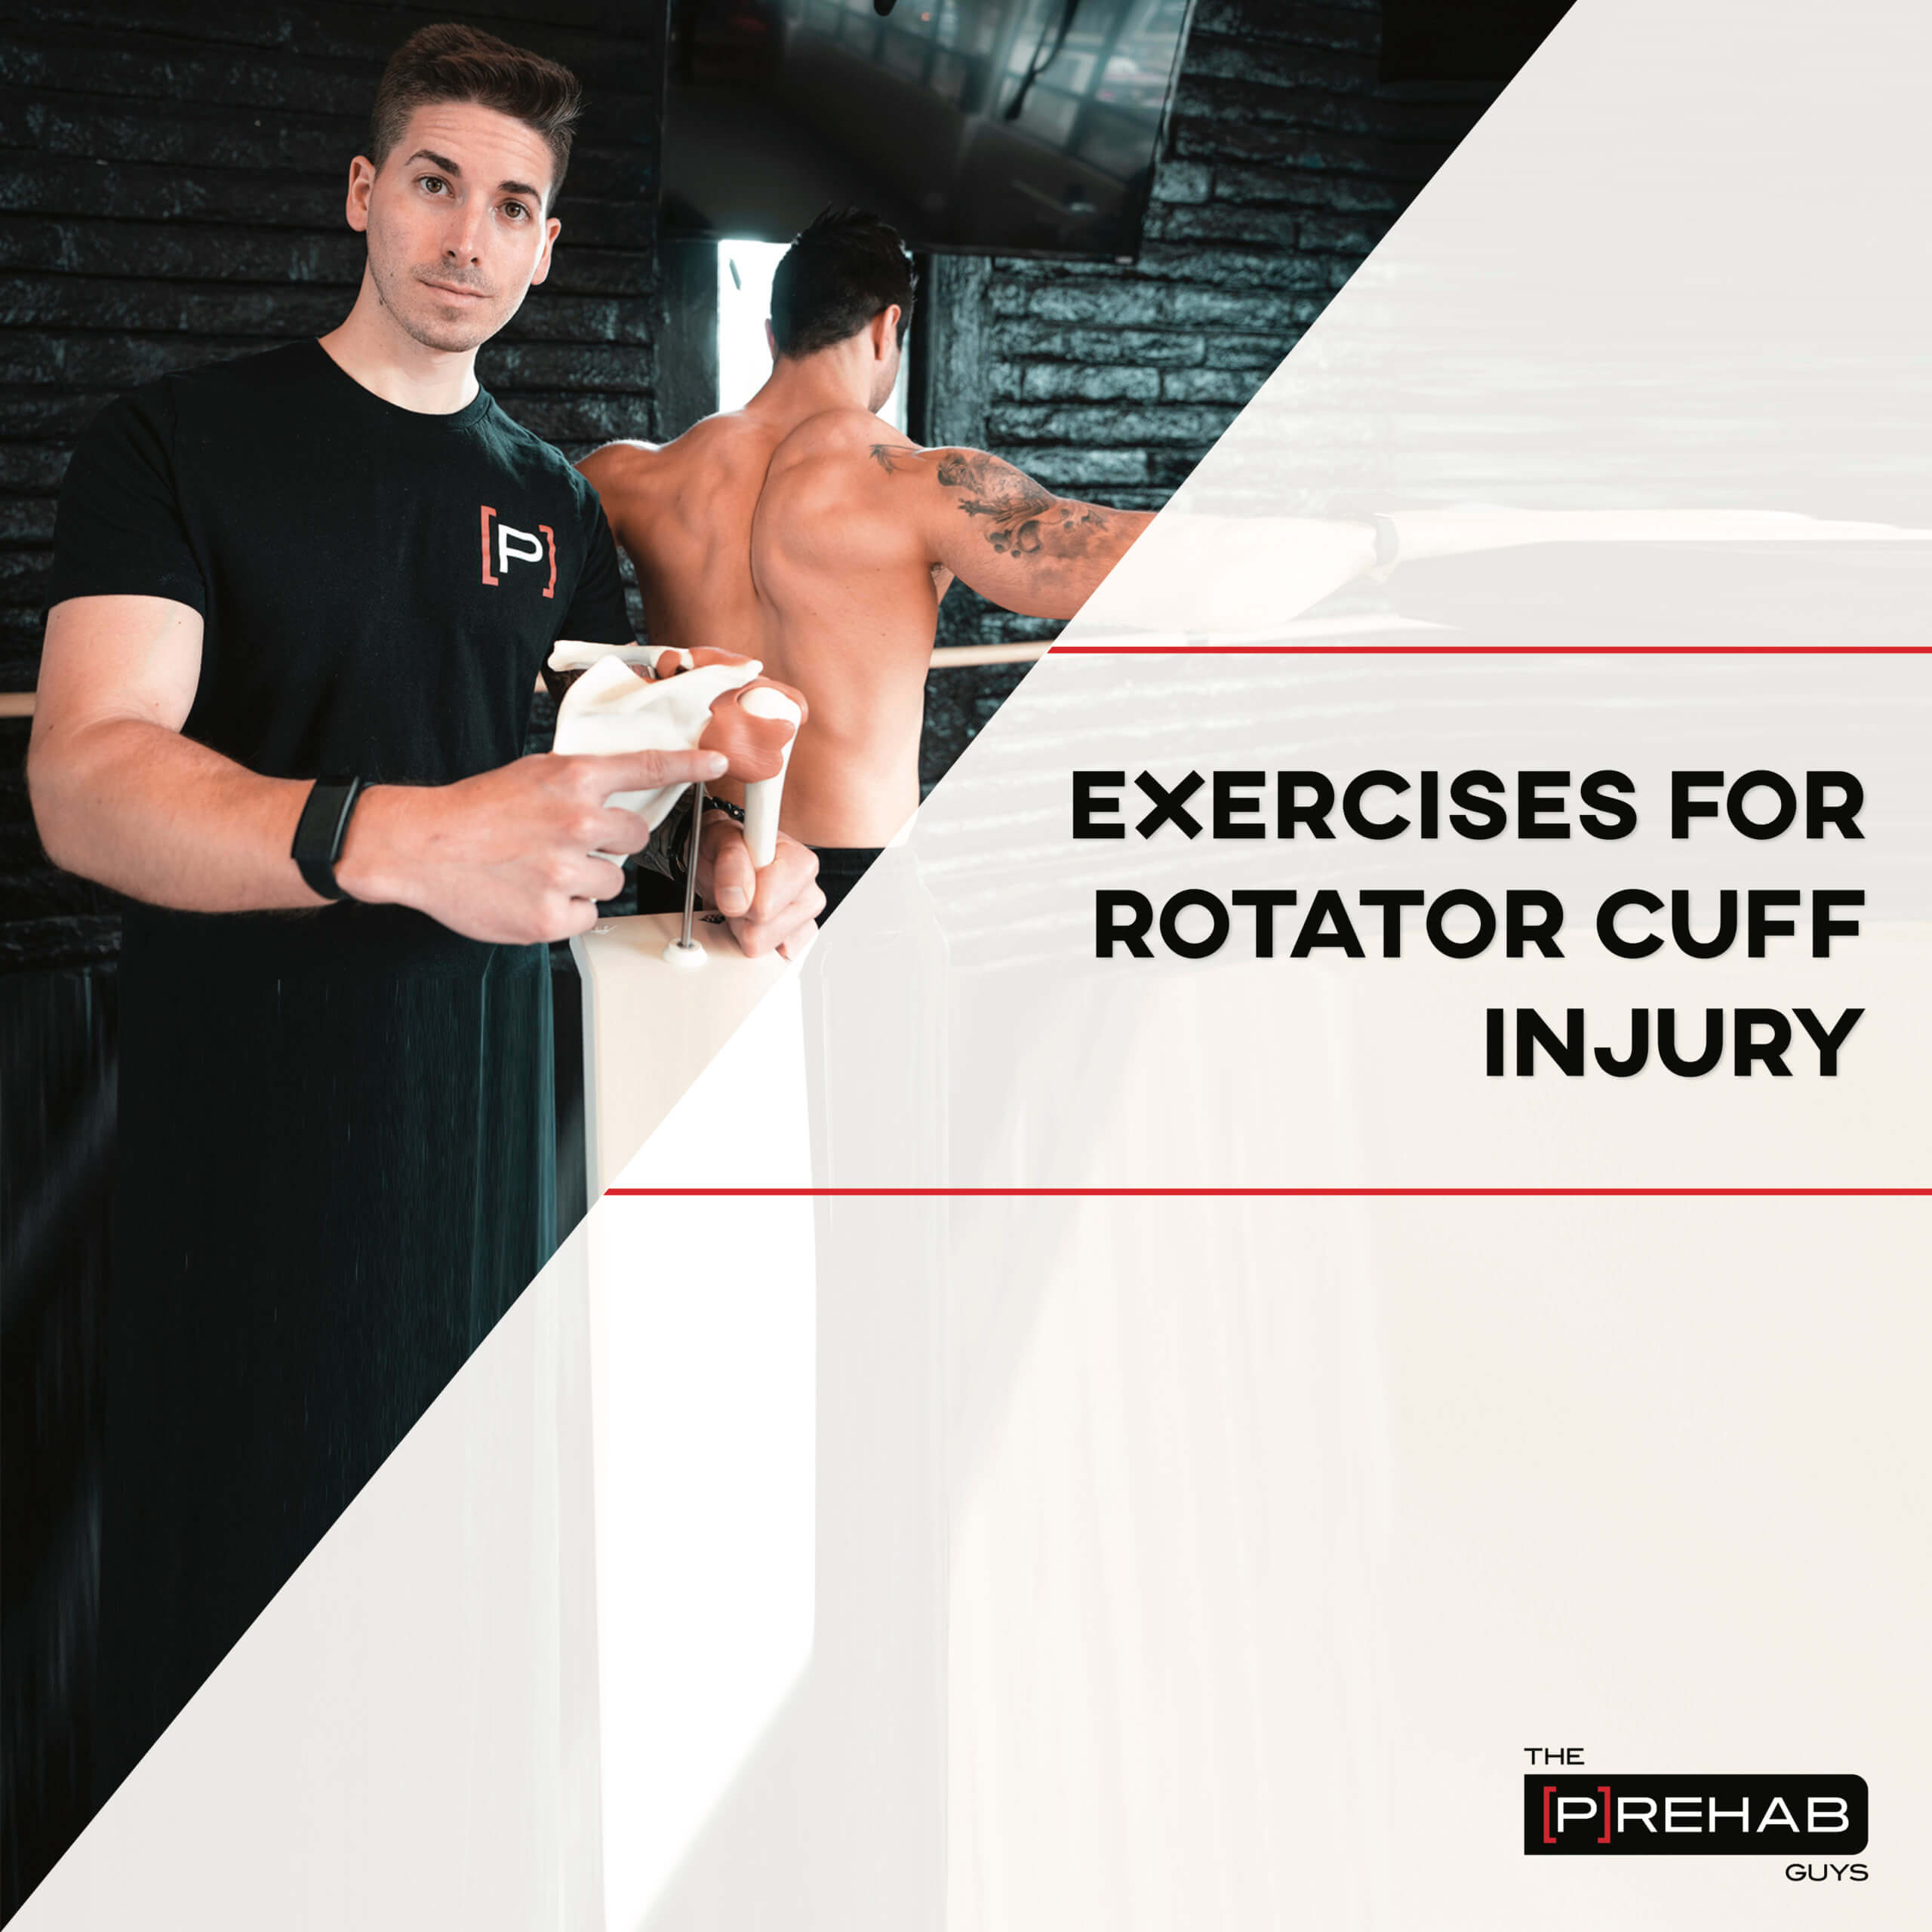 exercises for shoulder prehab guys rotator cuff